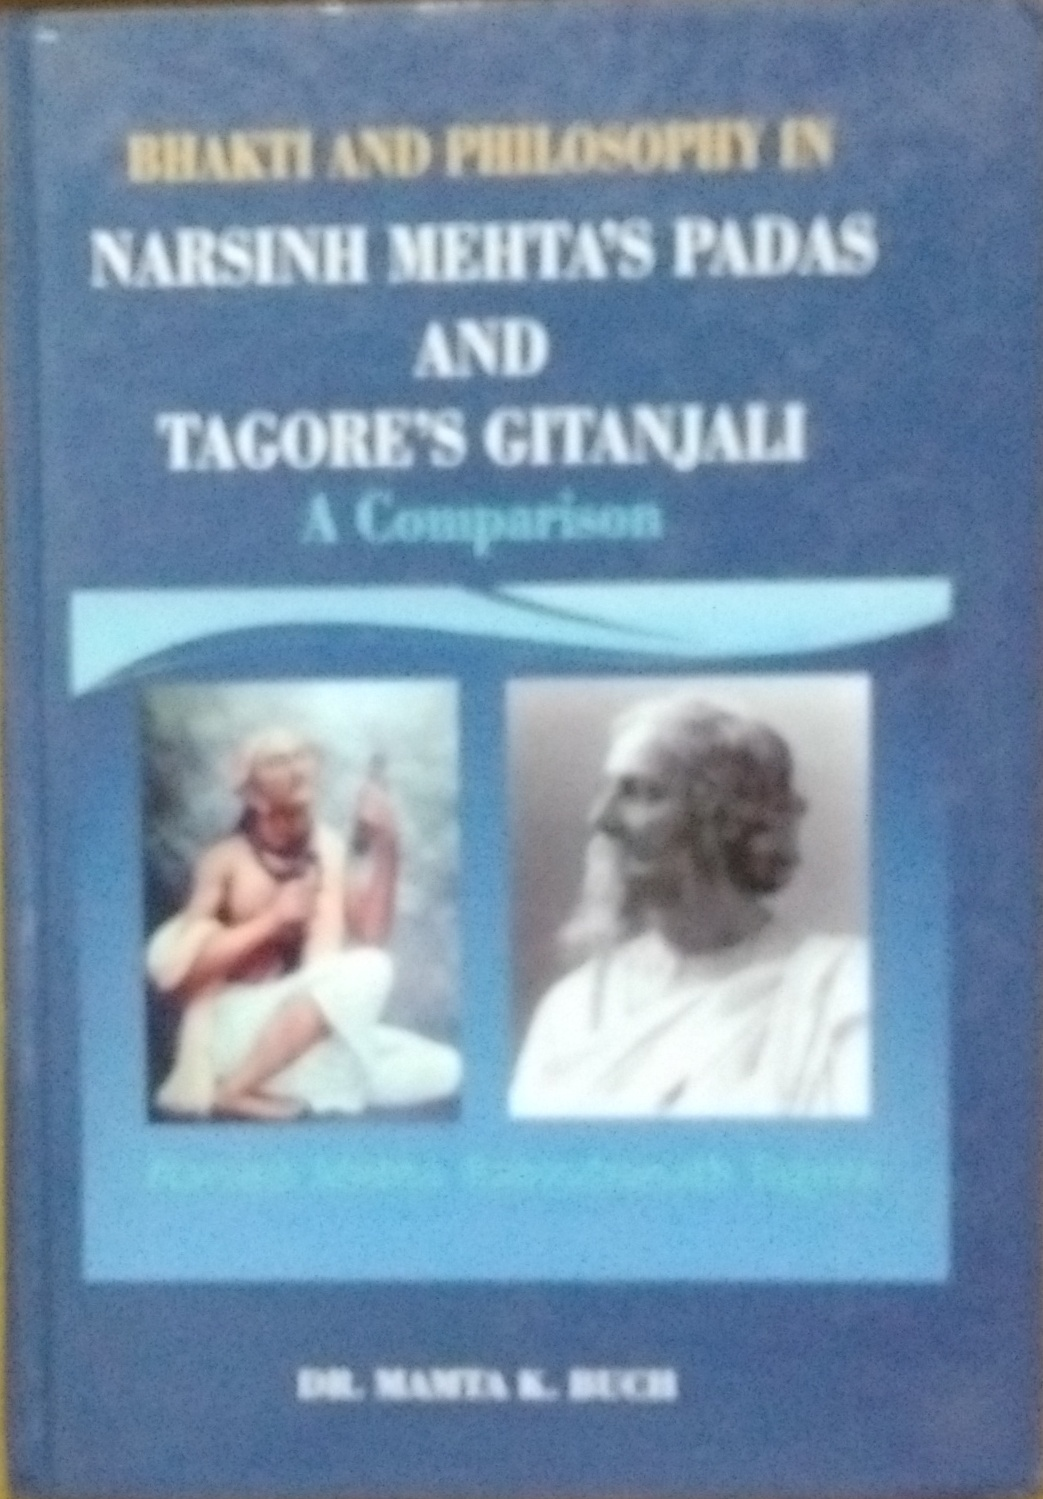 Bhakti and Philosophy in Narsinh Mehta's Padas and…